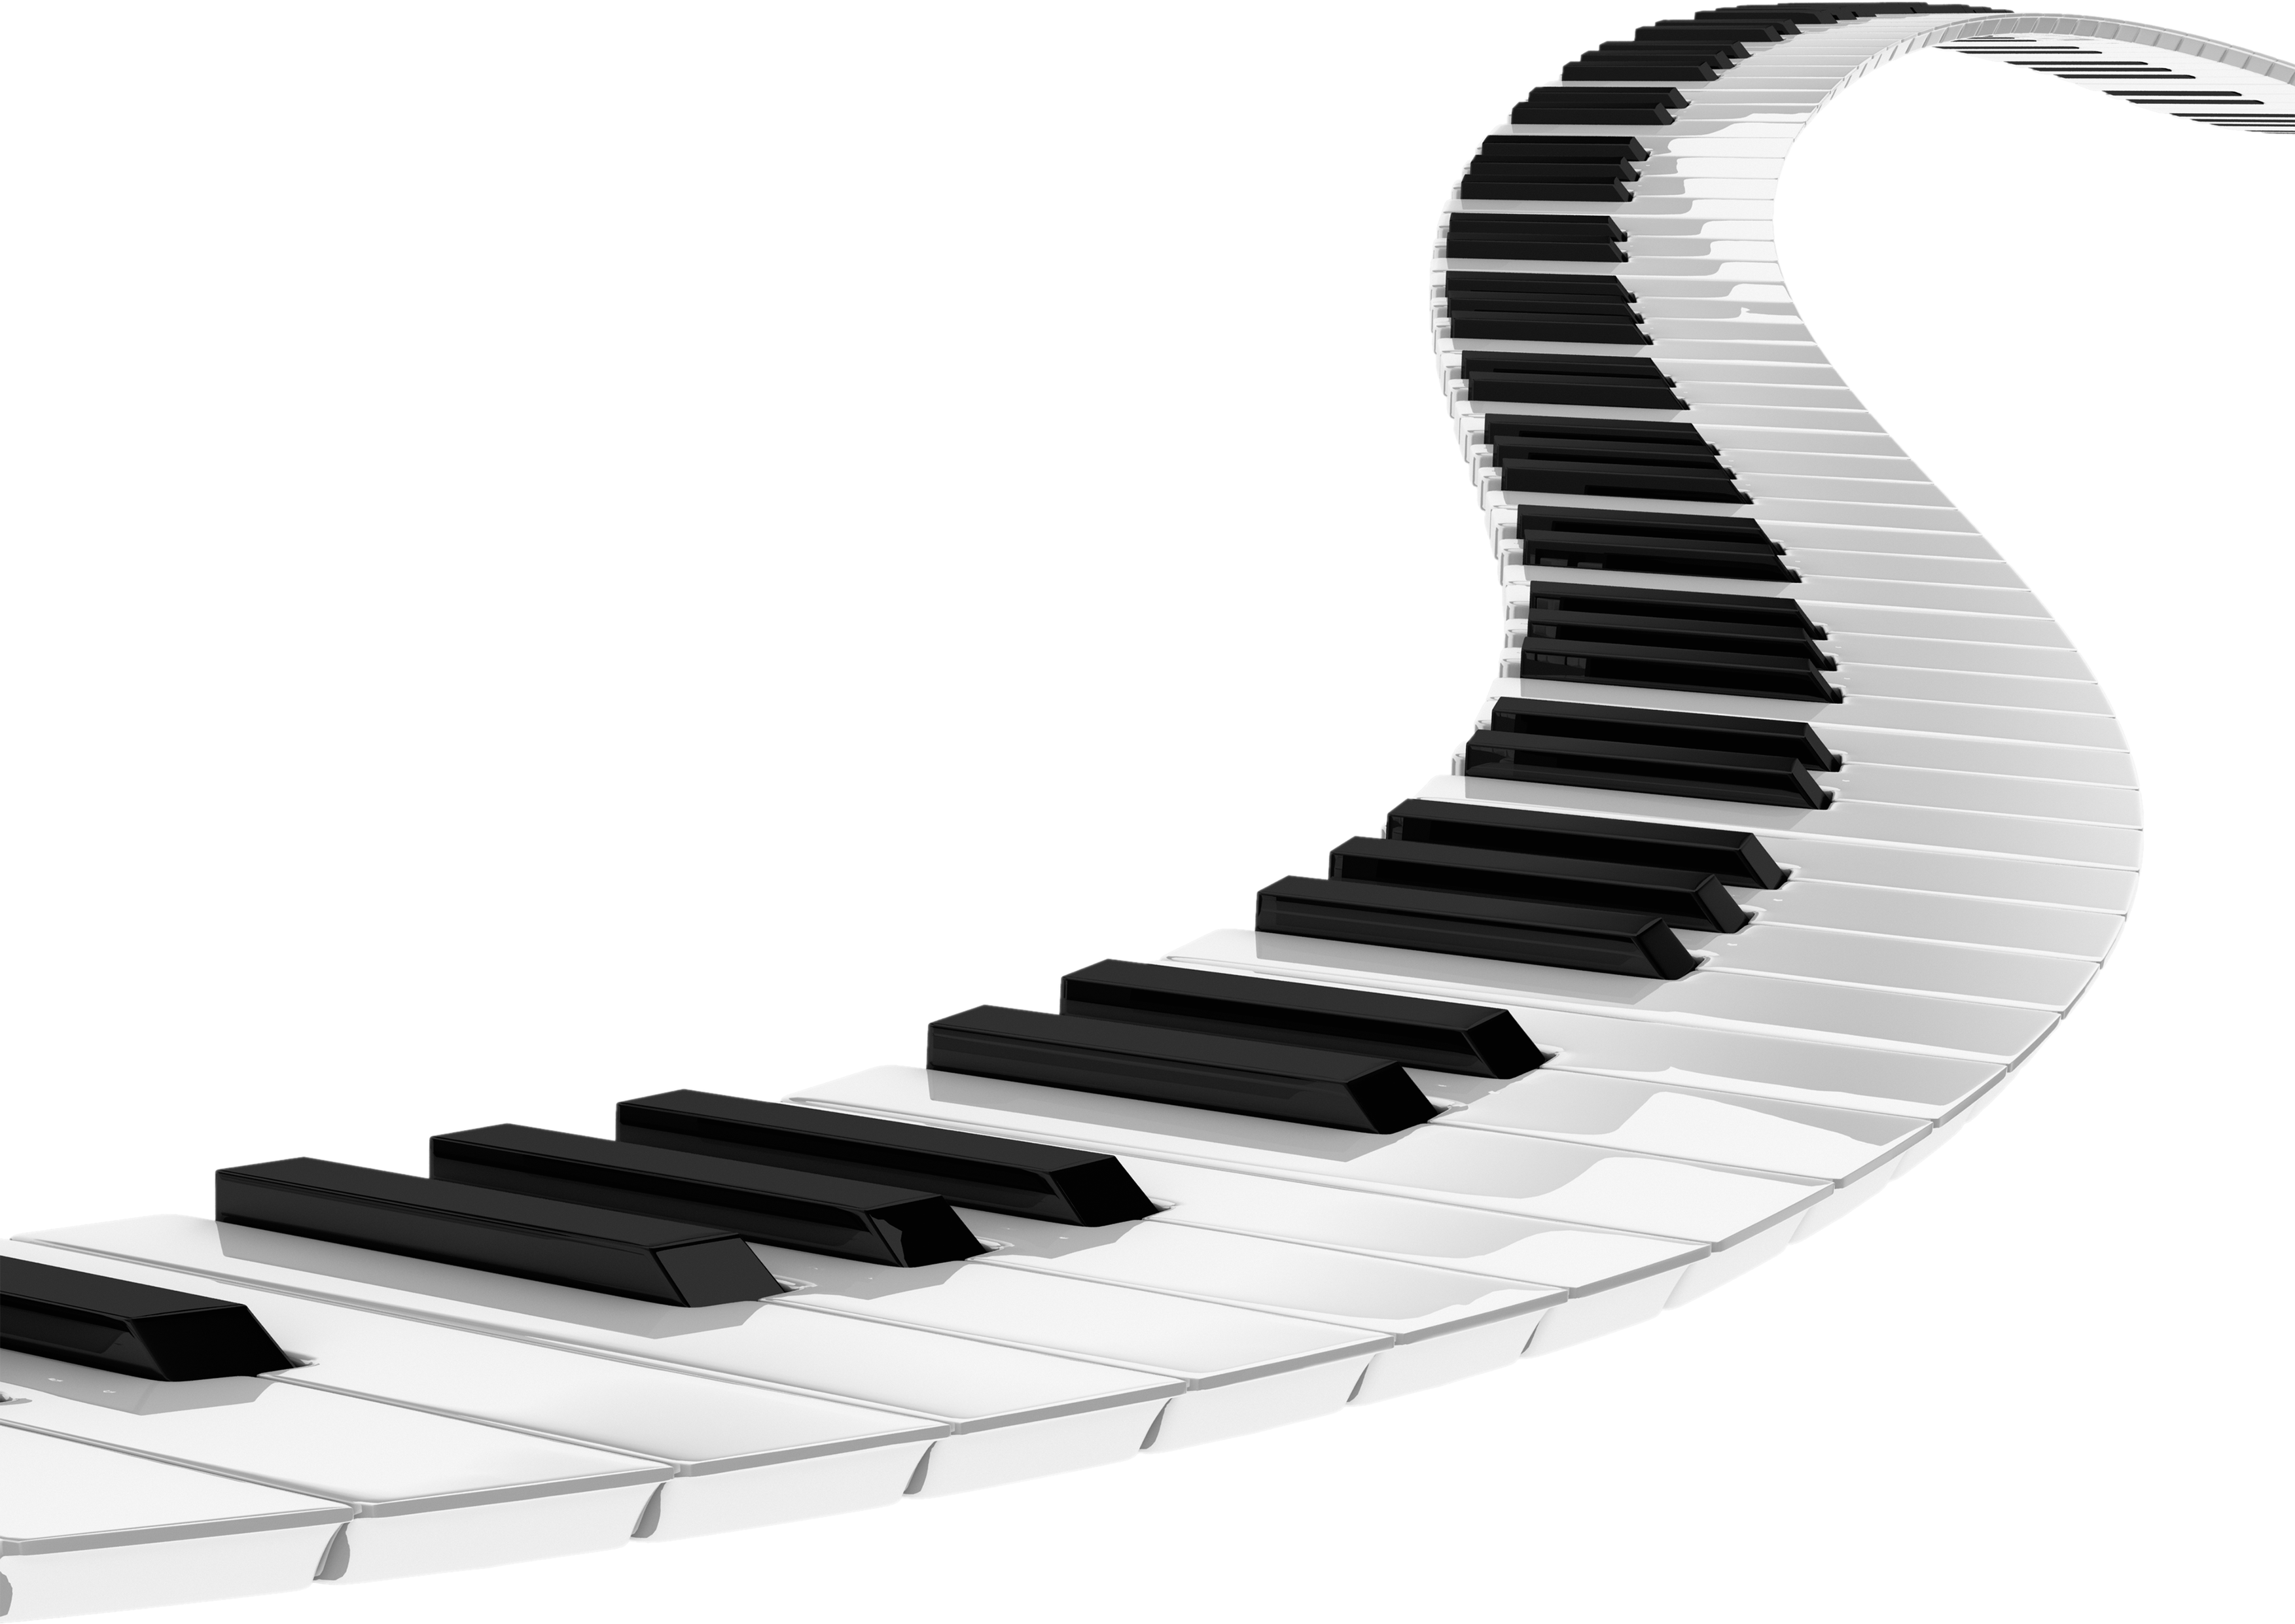 Piano clipart vintage piano. Png image free download